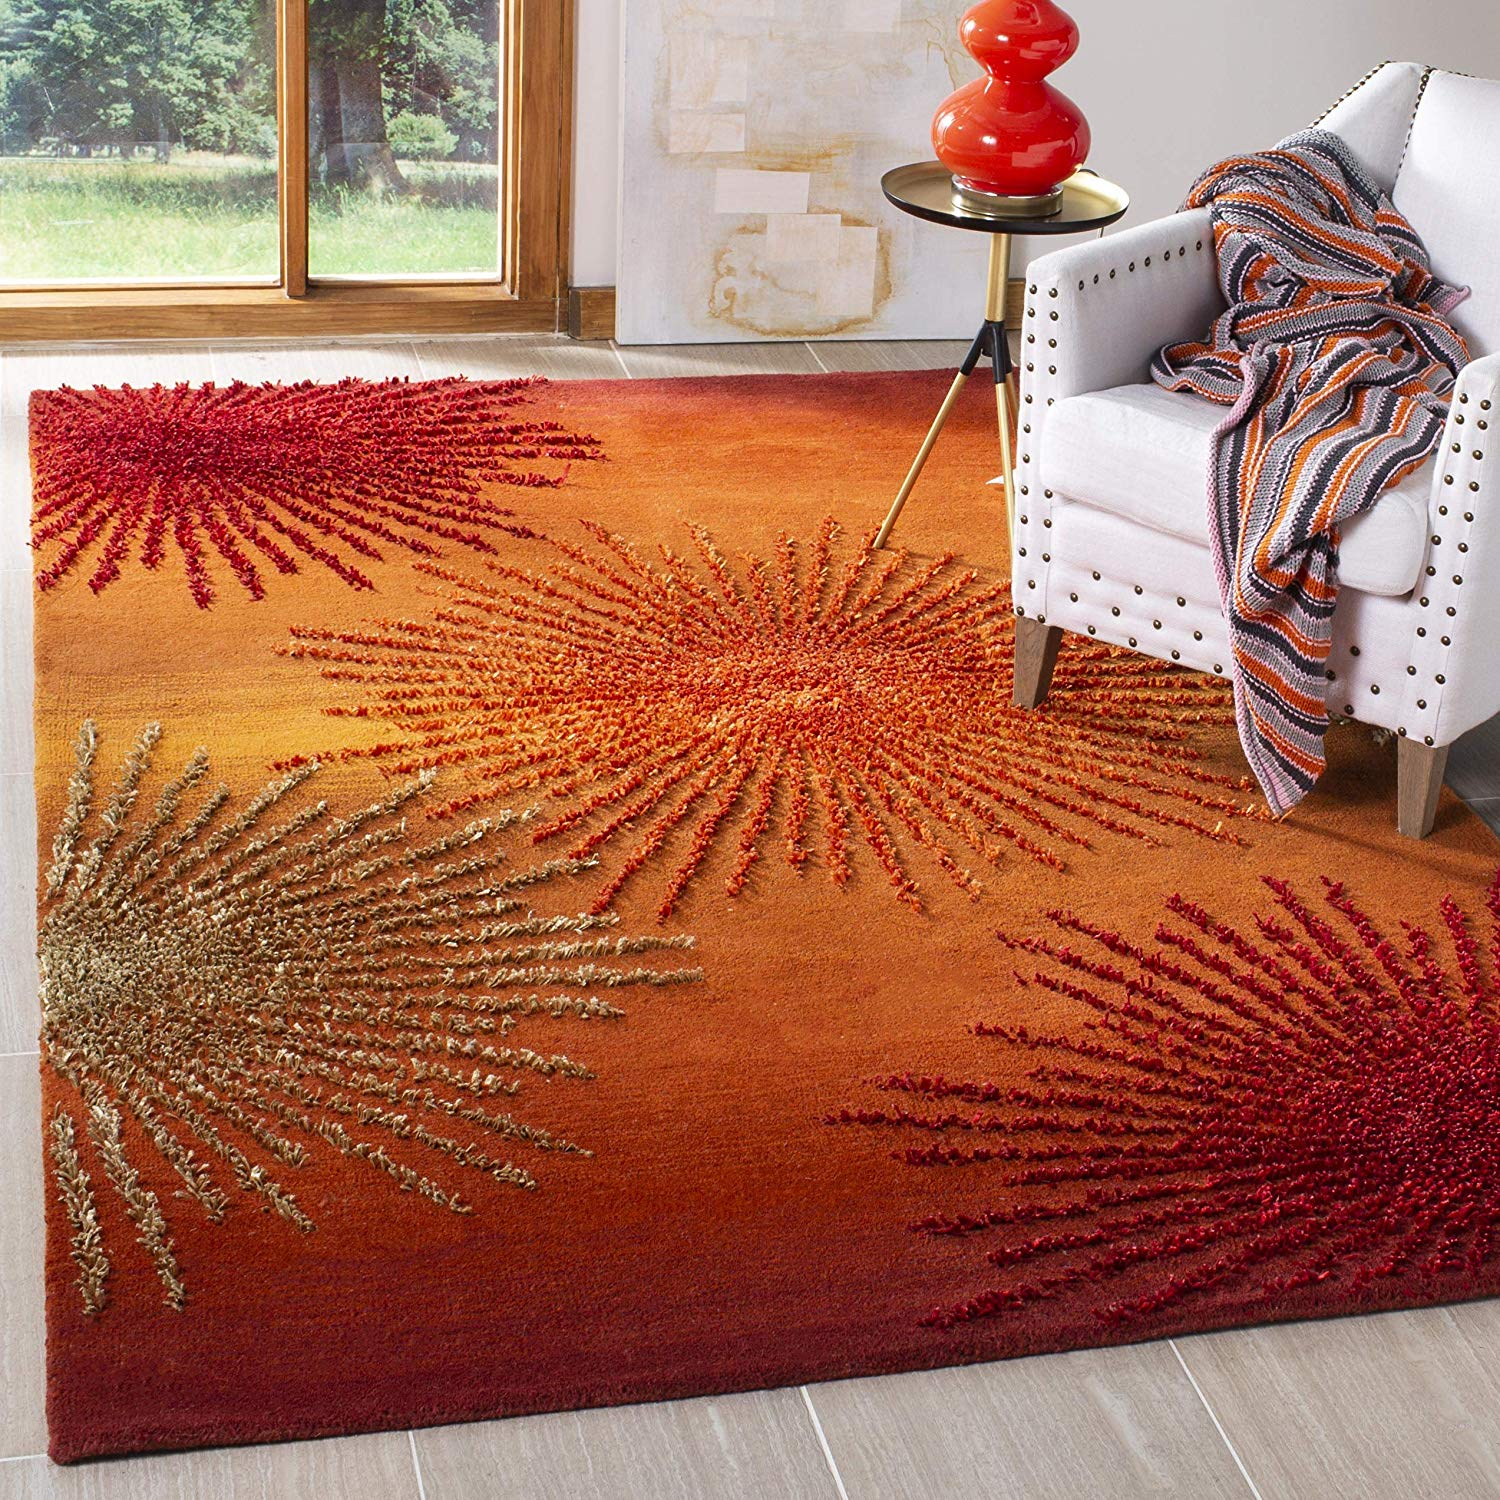 Safavieh Soho Collection SOH712R Handmade Fireworks Rust and Multicolored Premium Wool Area Rug